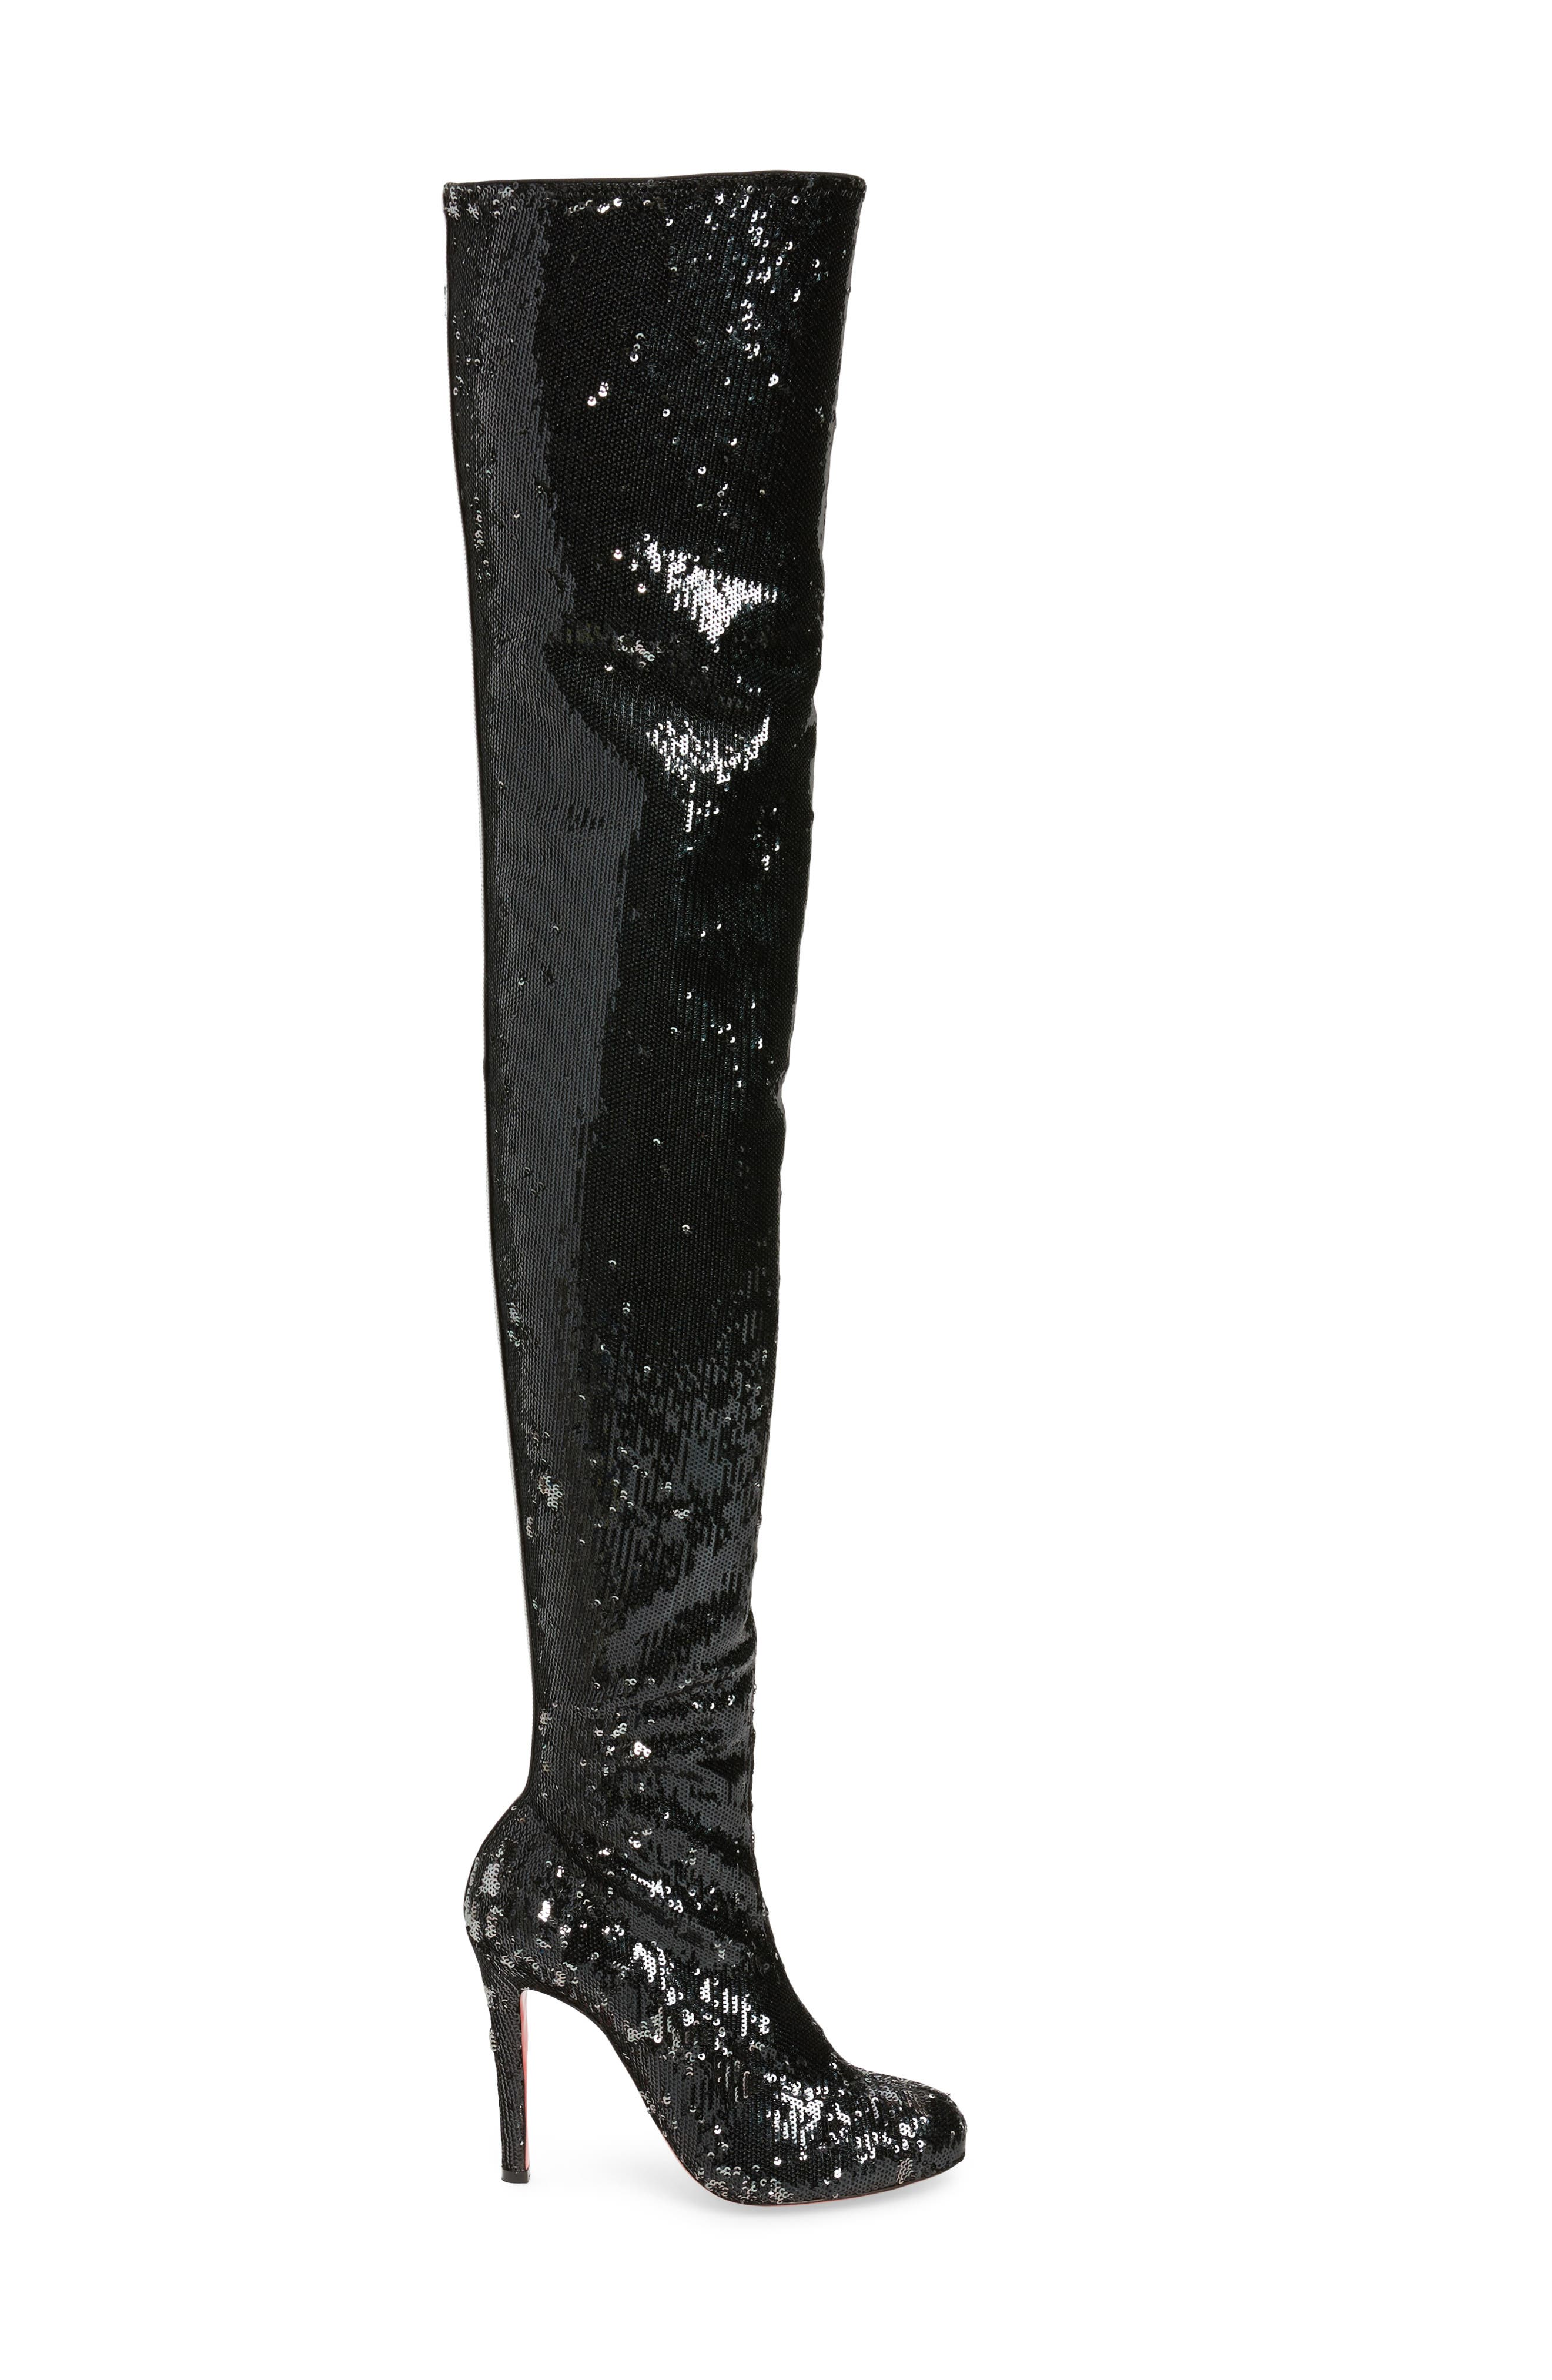 Louise Sequin Thigh High Boot,                             Alternate thumbnail 3, color,                             Black/ Silver